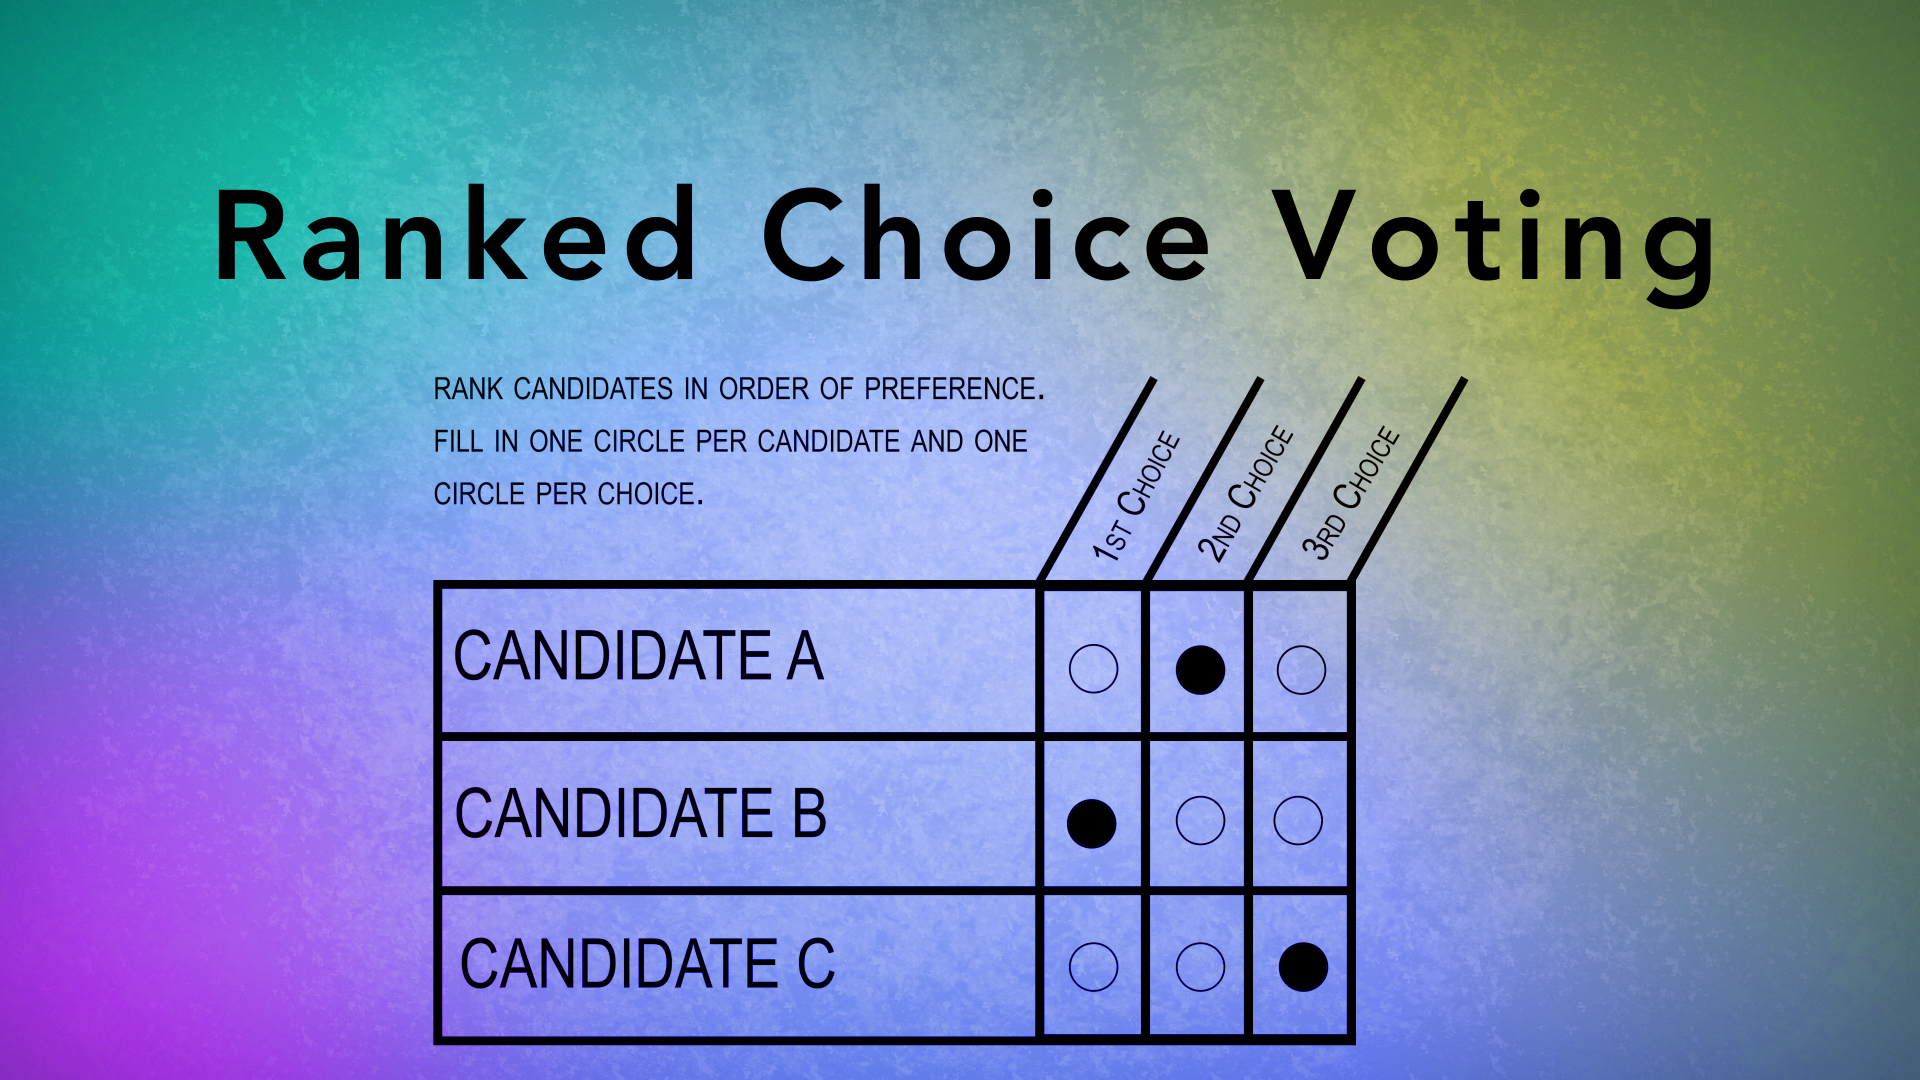 Ranked Choice Voting graphic